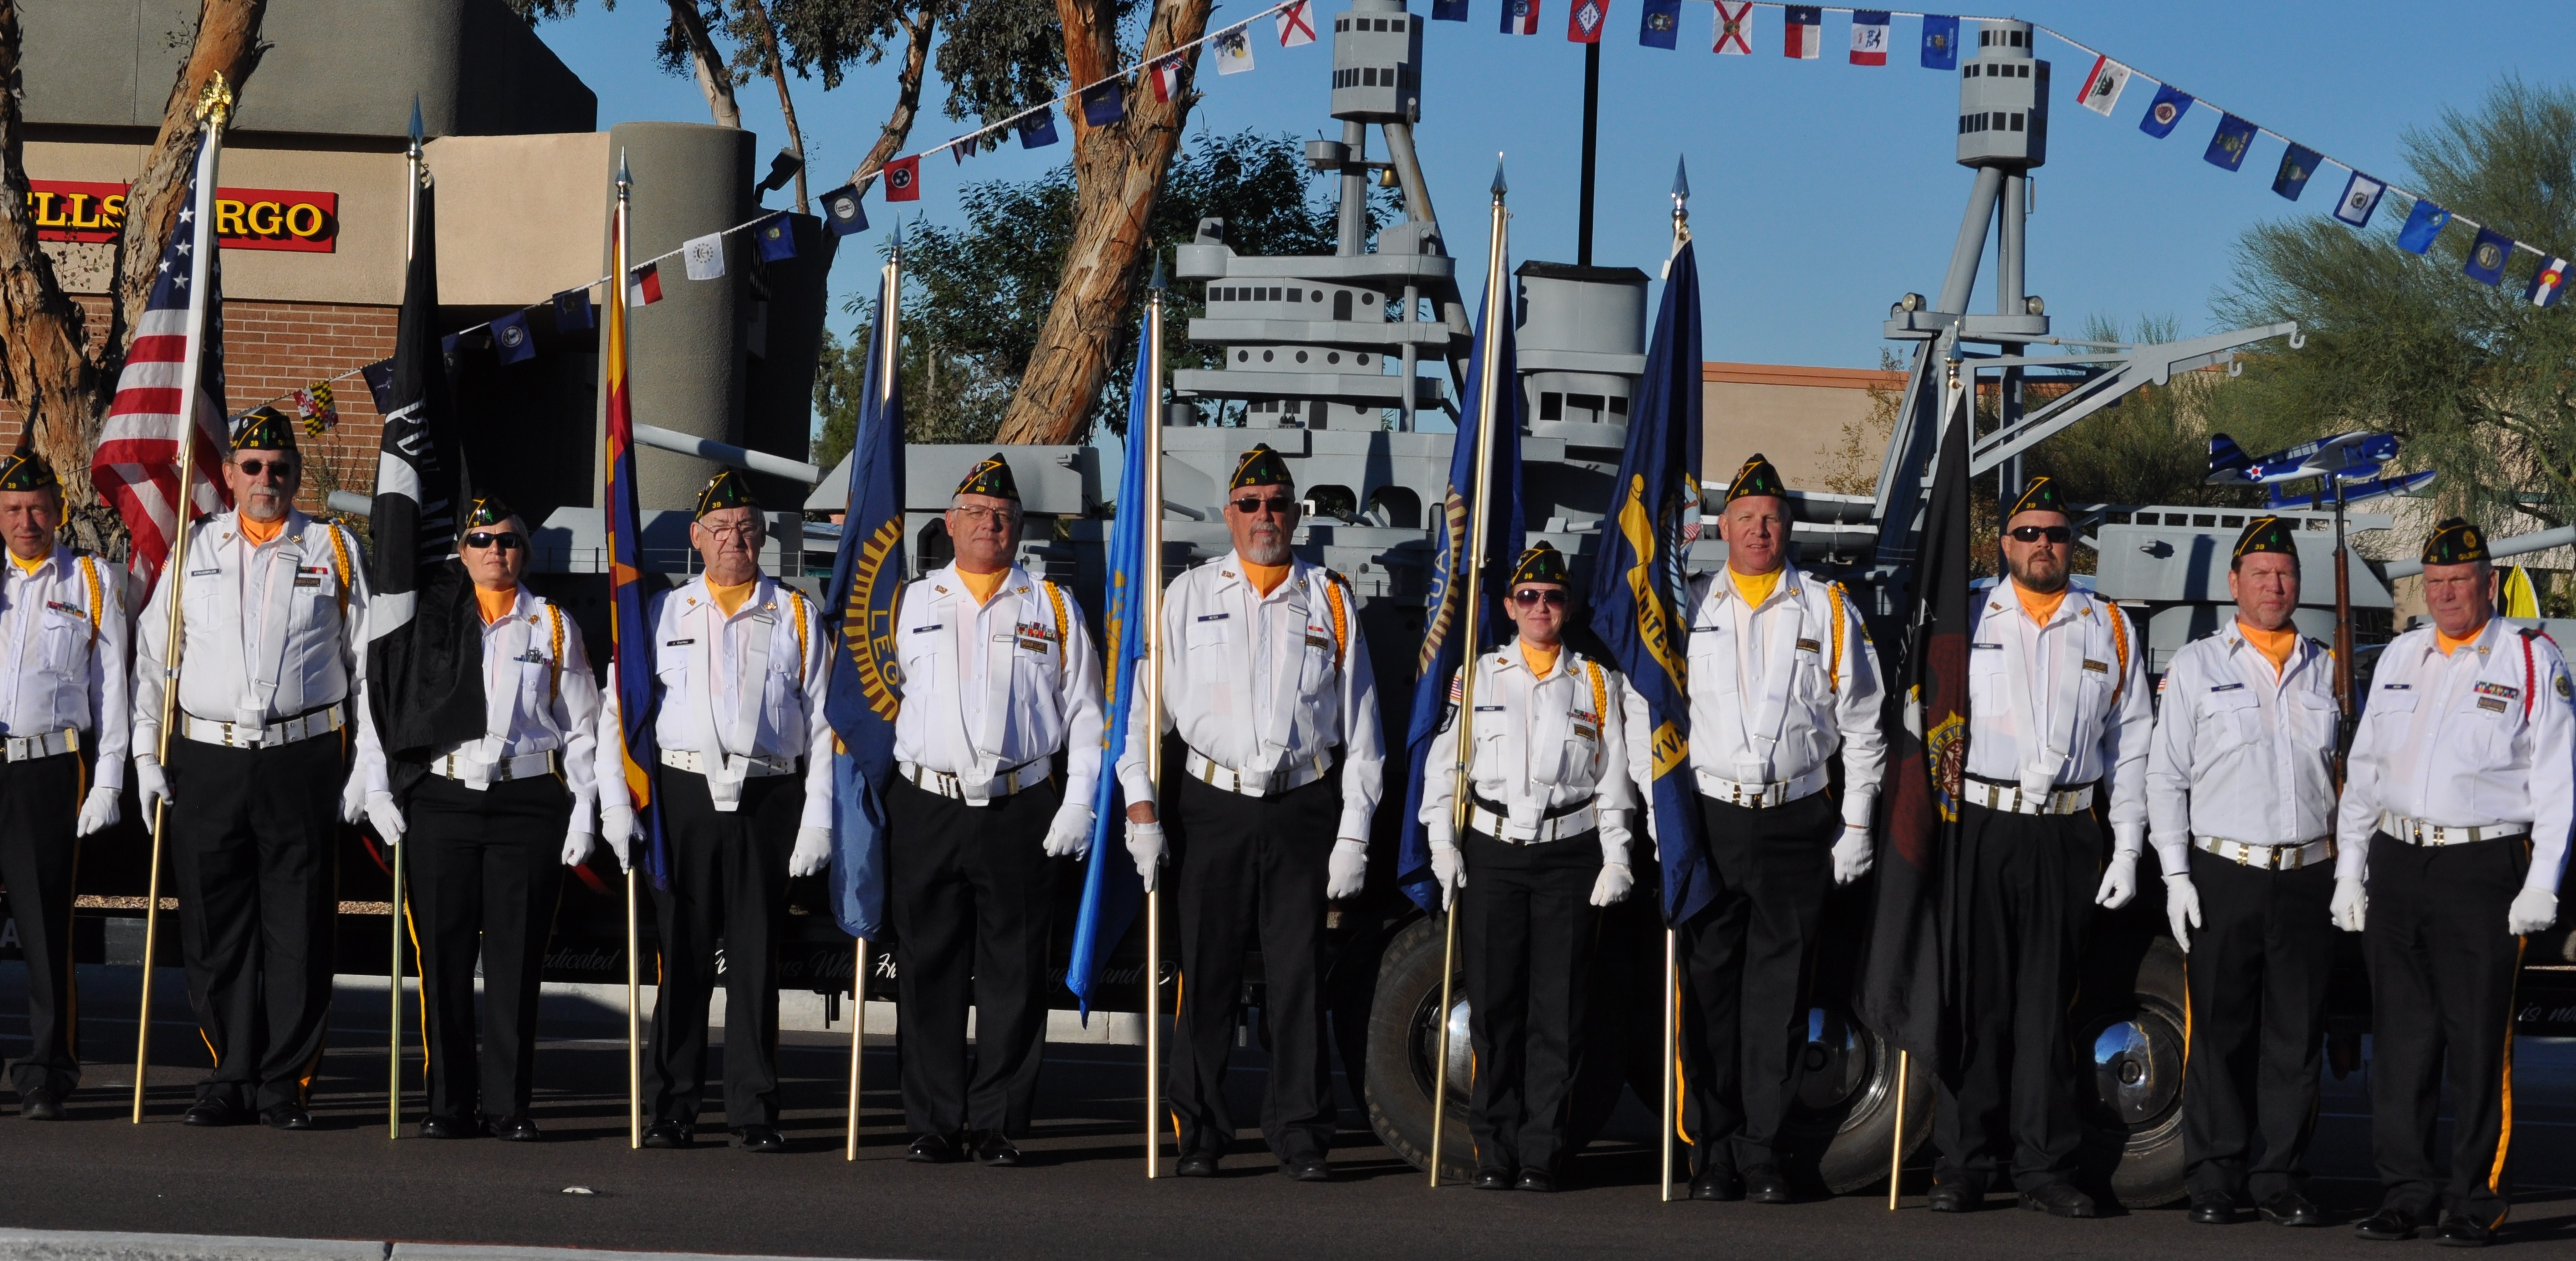 Color_Guard_2012.jpg